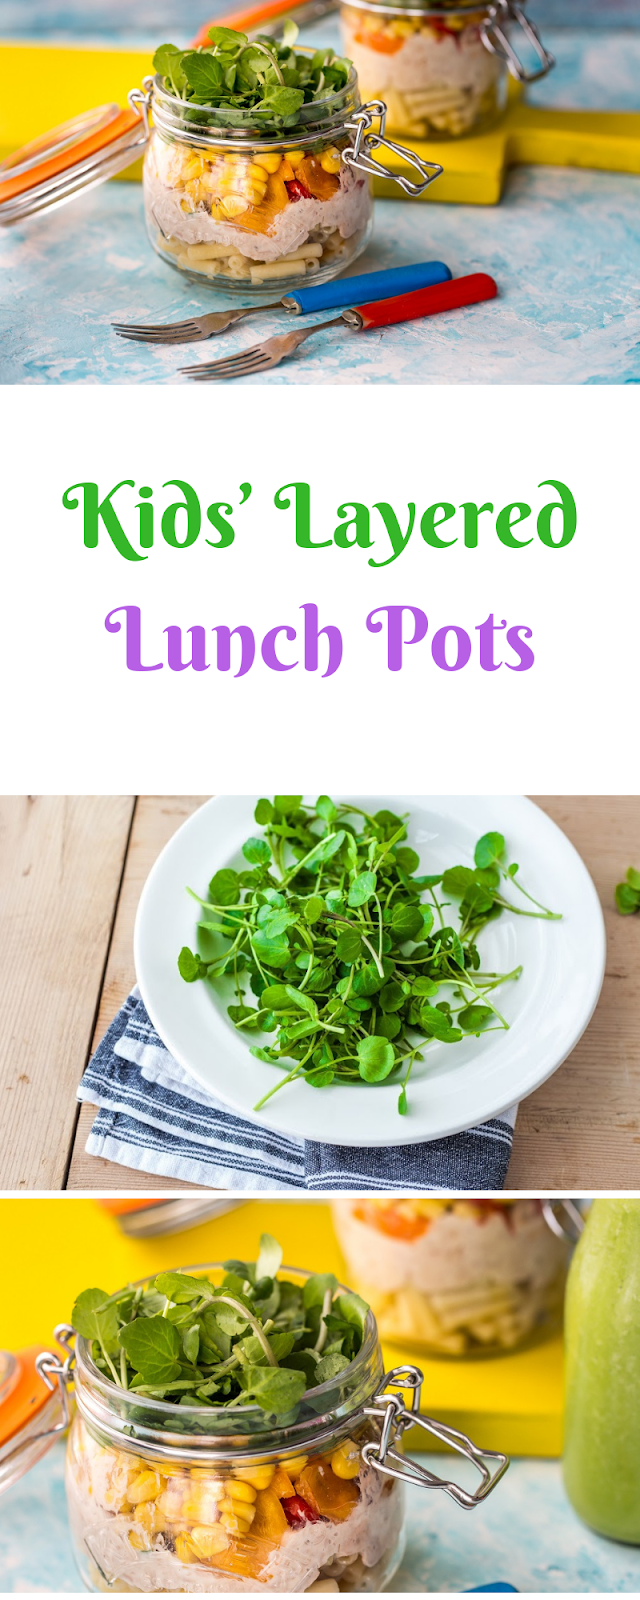 Kids' Layered Lunch Pots: Back to School with Watercress